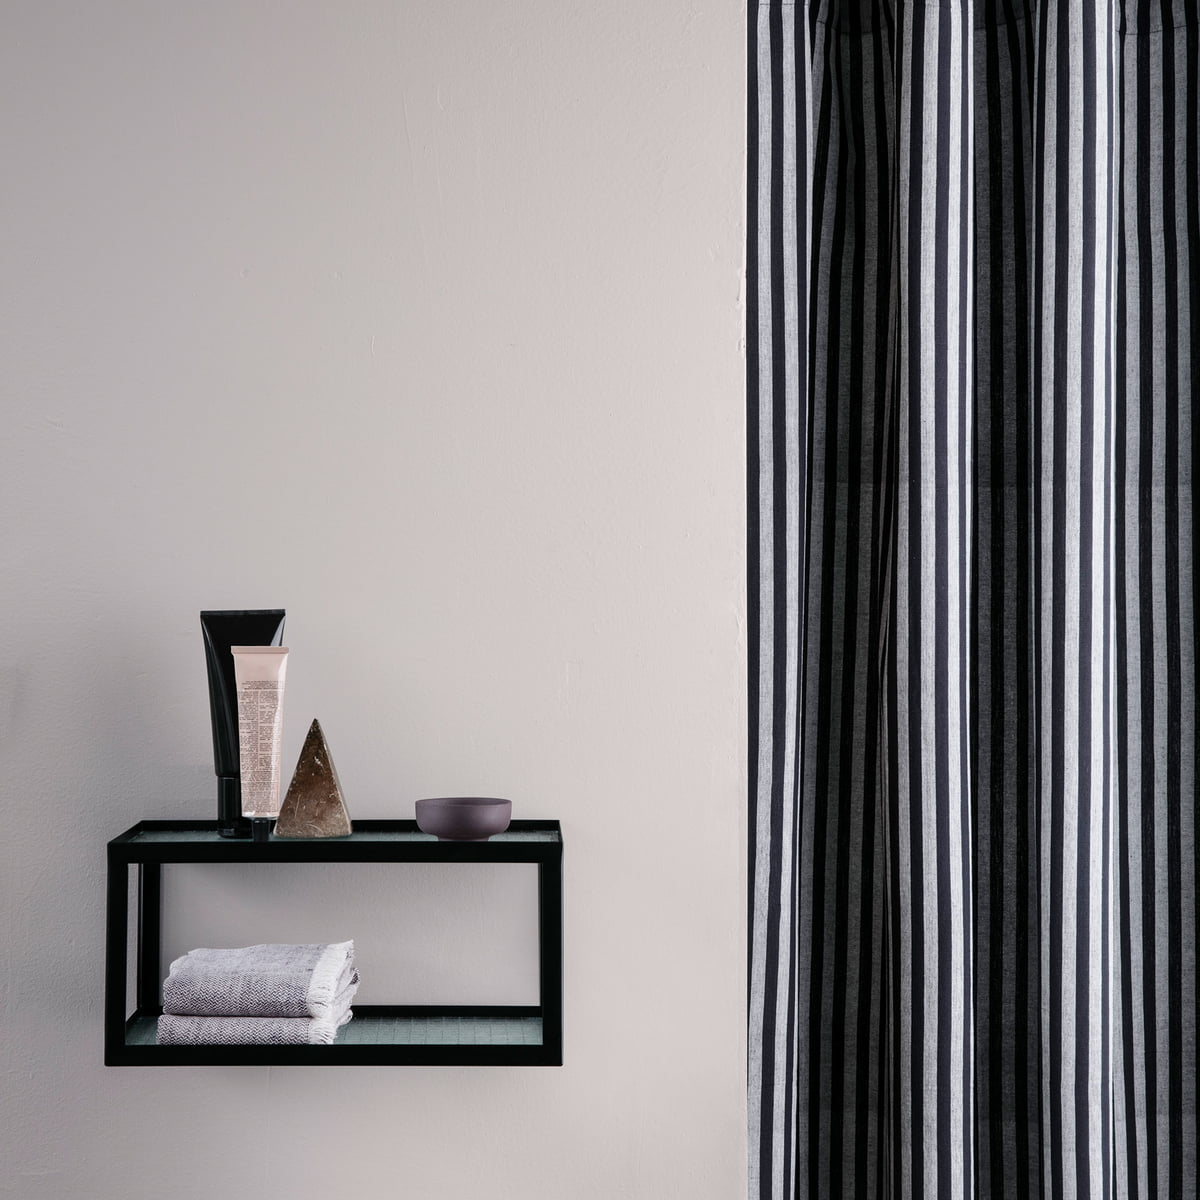 haze wandregal von ferm living connox. Black Bedroom Furniture Sets. Home Design Ideas